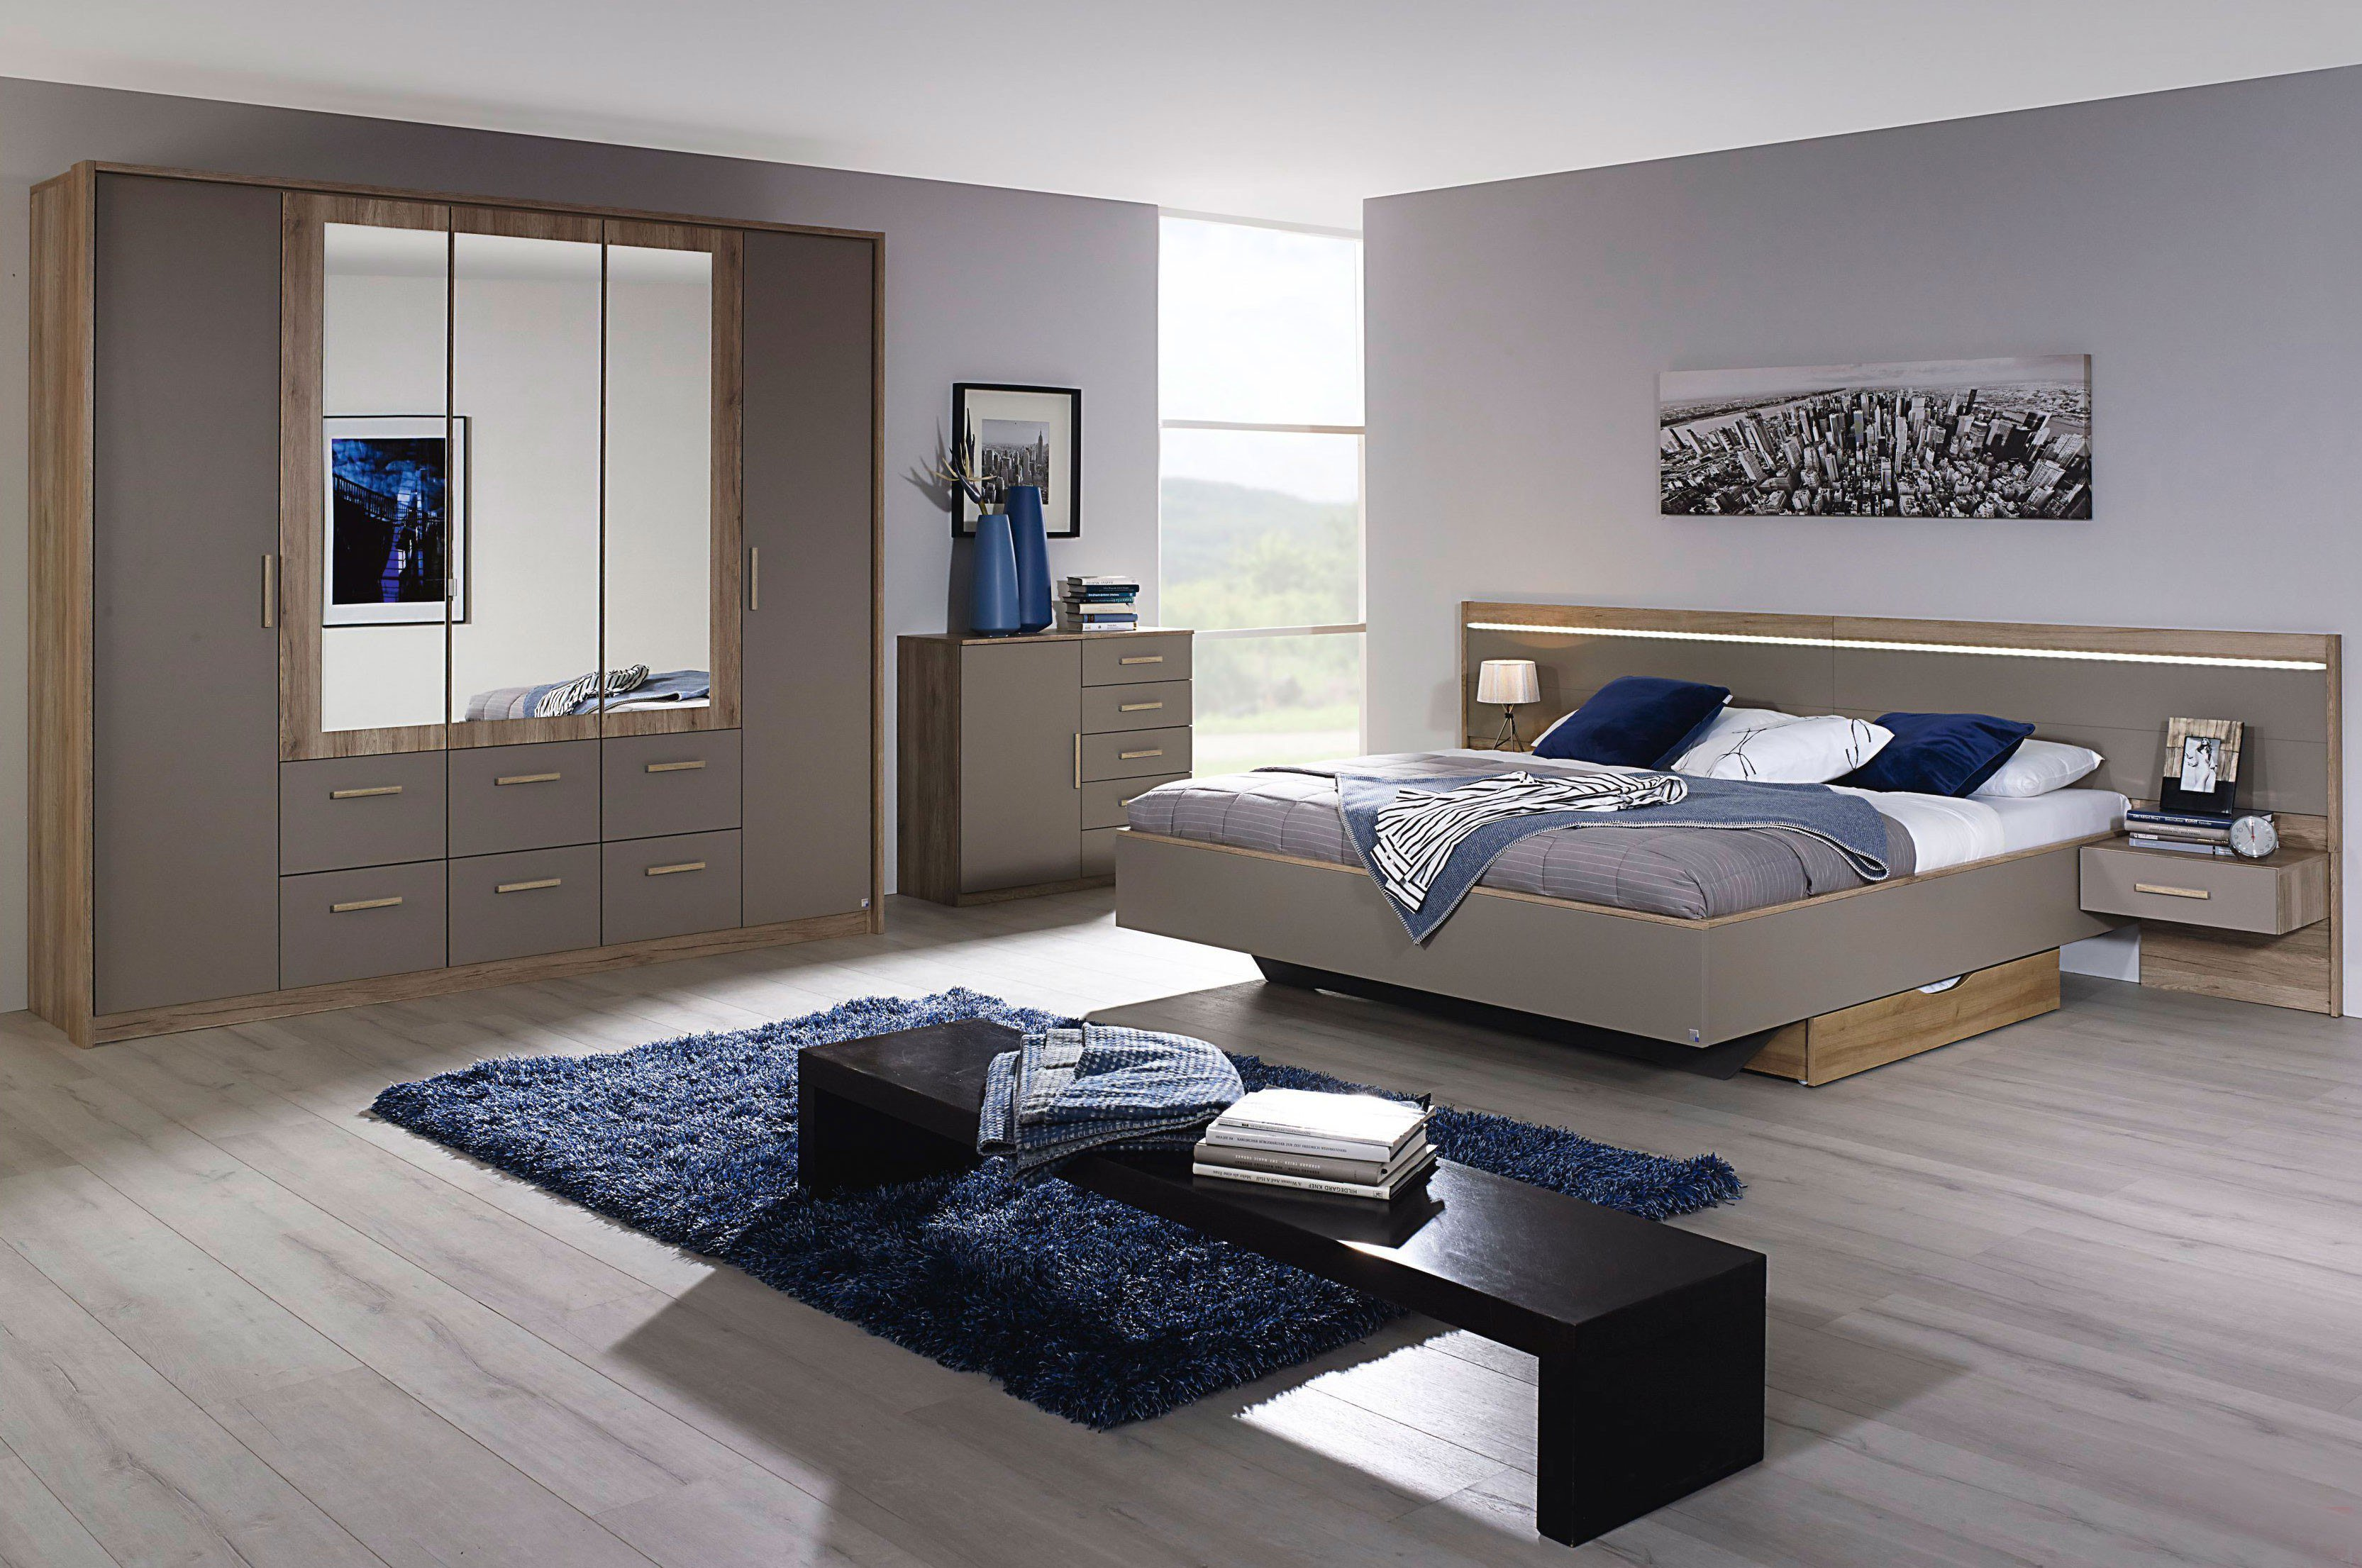 rauch ulm schlafzimmer fango eiche sanremo m bel letz ihr online shop. Black Bedroom Furniture Sets. Home Design Ideas